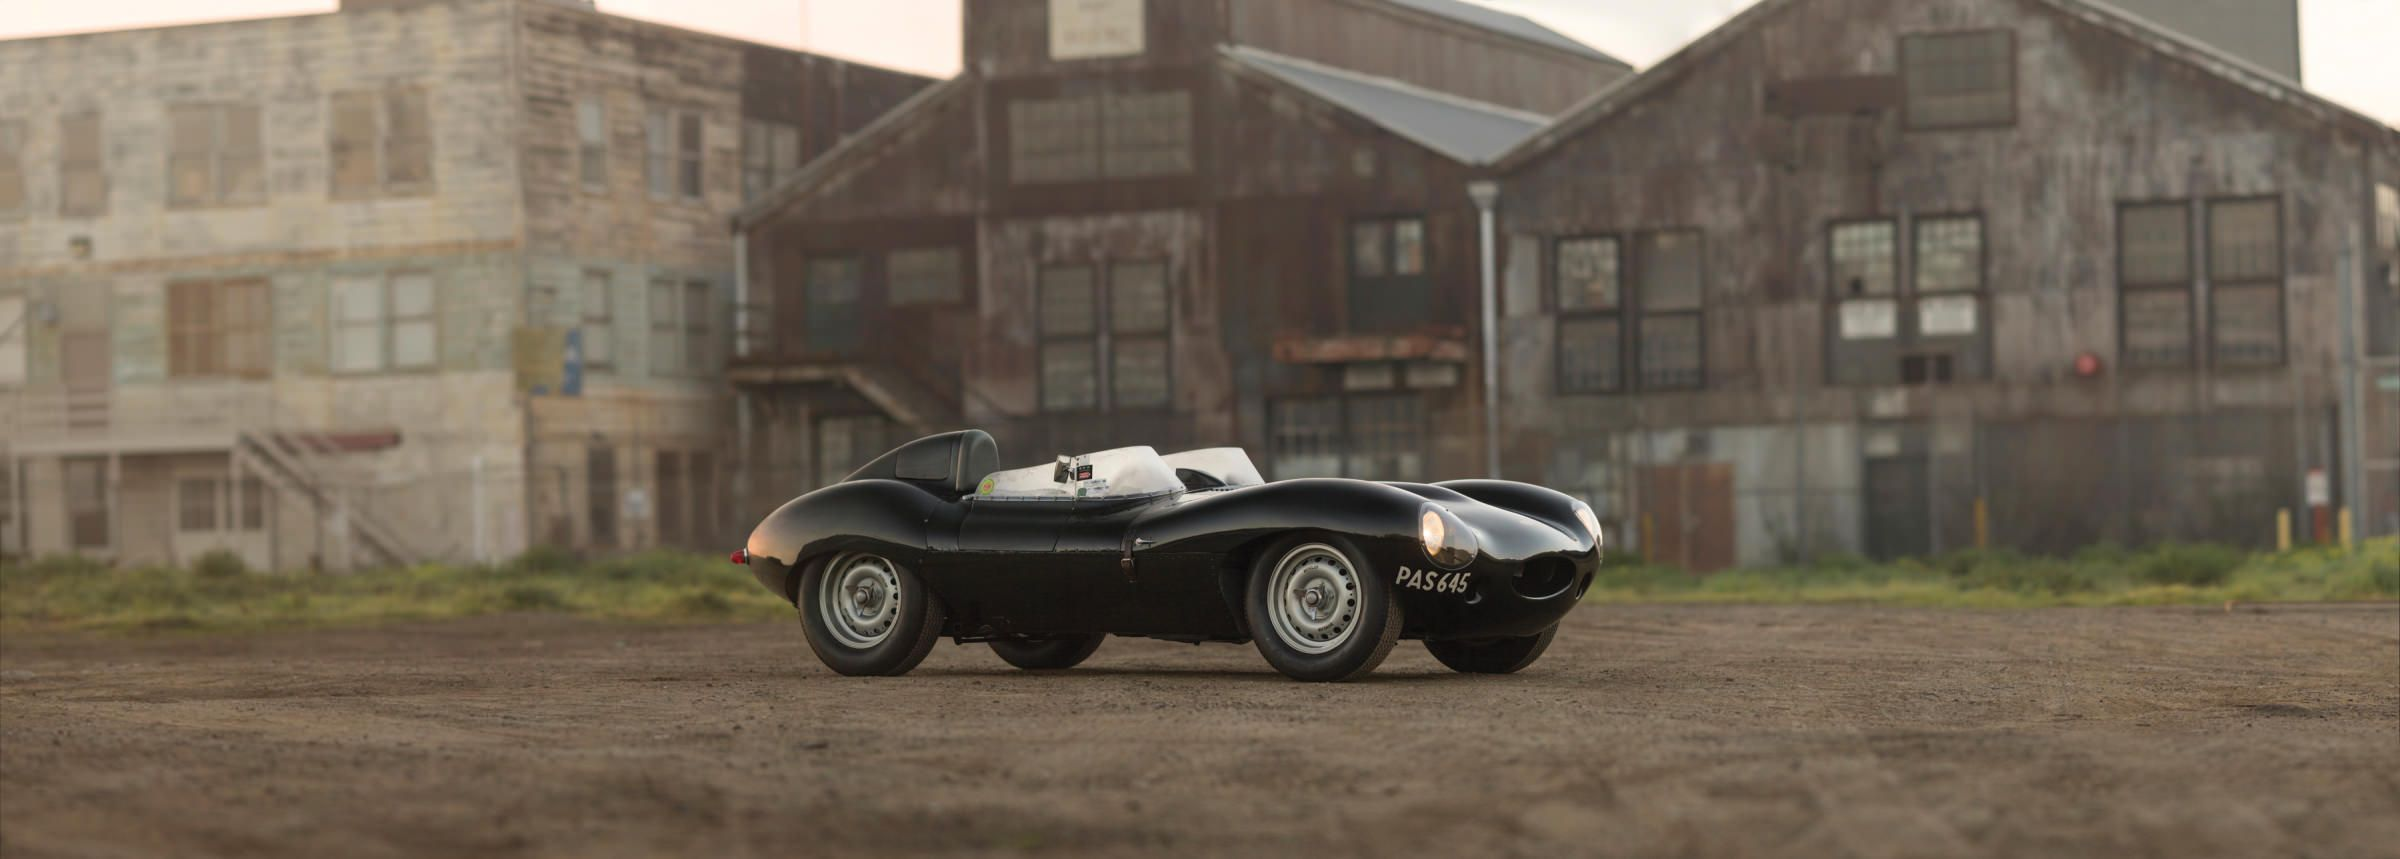 Jaguar-D-Type-19.jpg (2400×859)